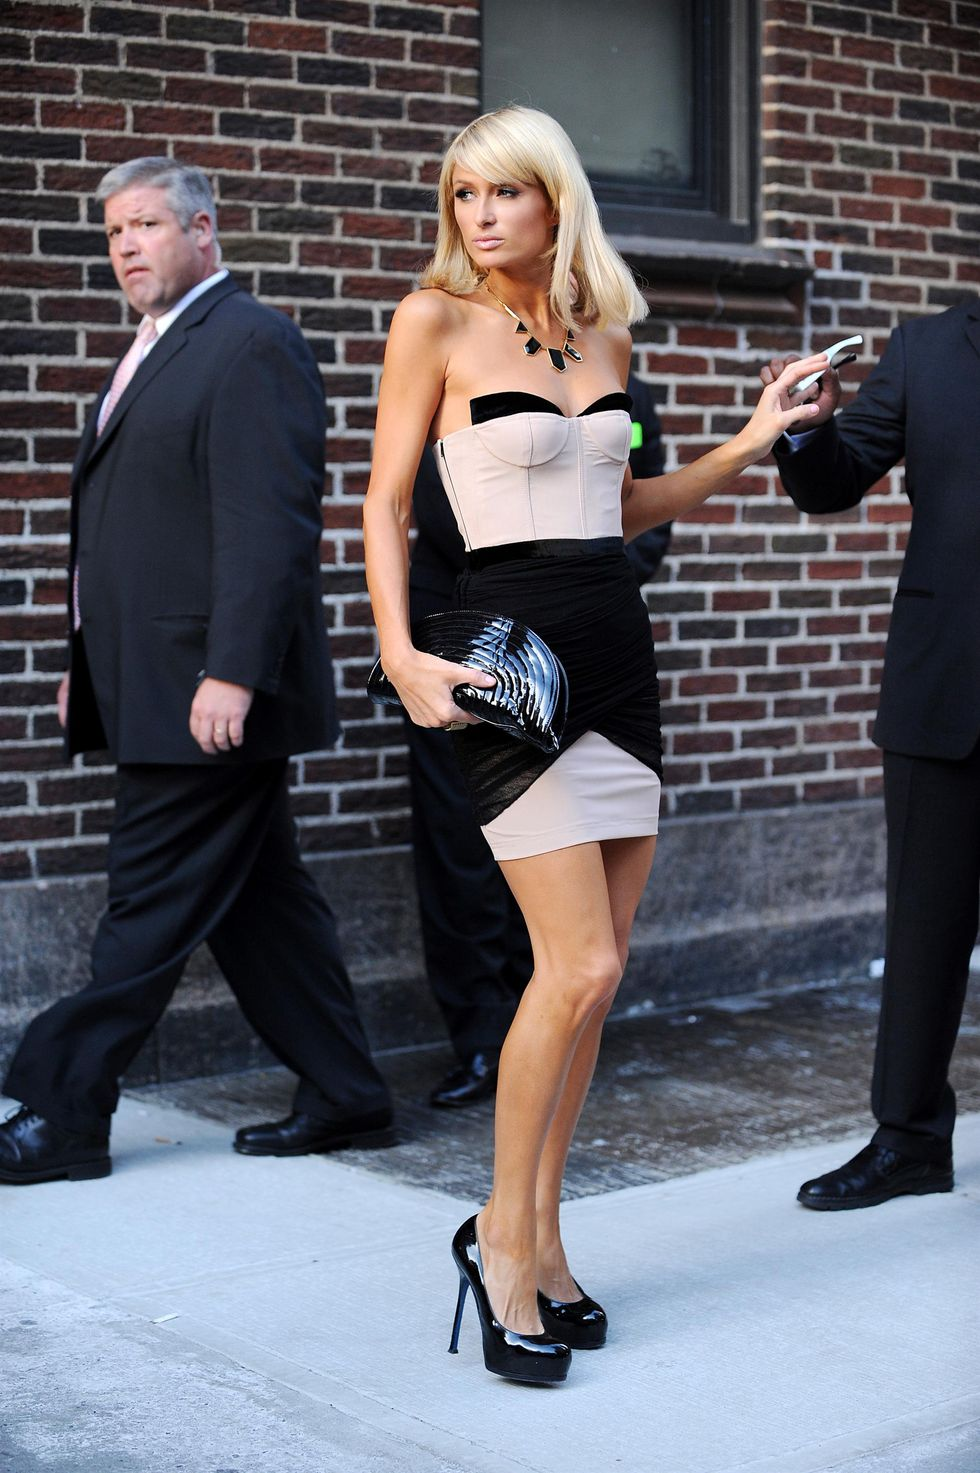 paris-hilton-visits-the-late-show-with-david-letterman-in-new-york-01